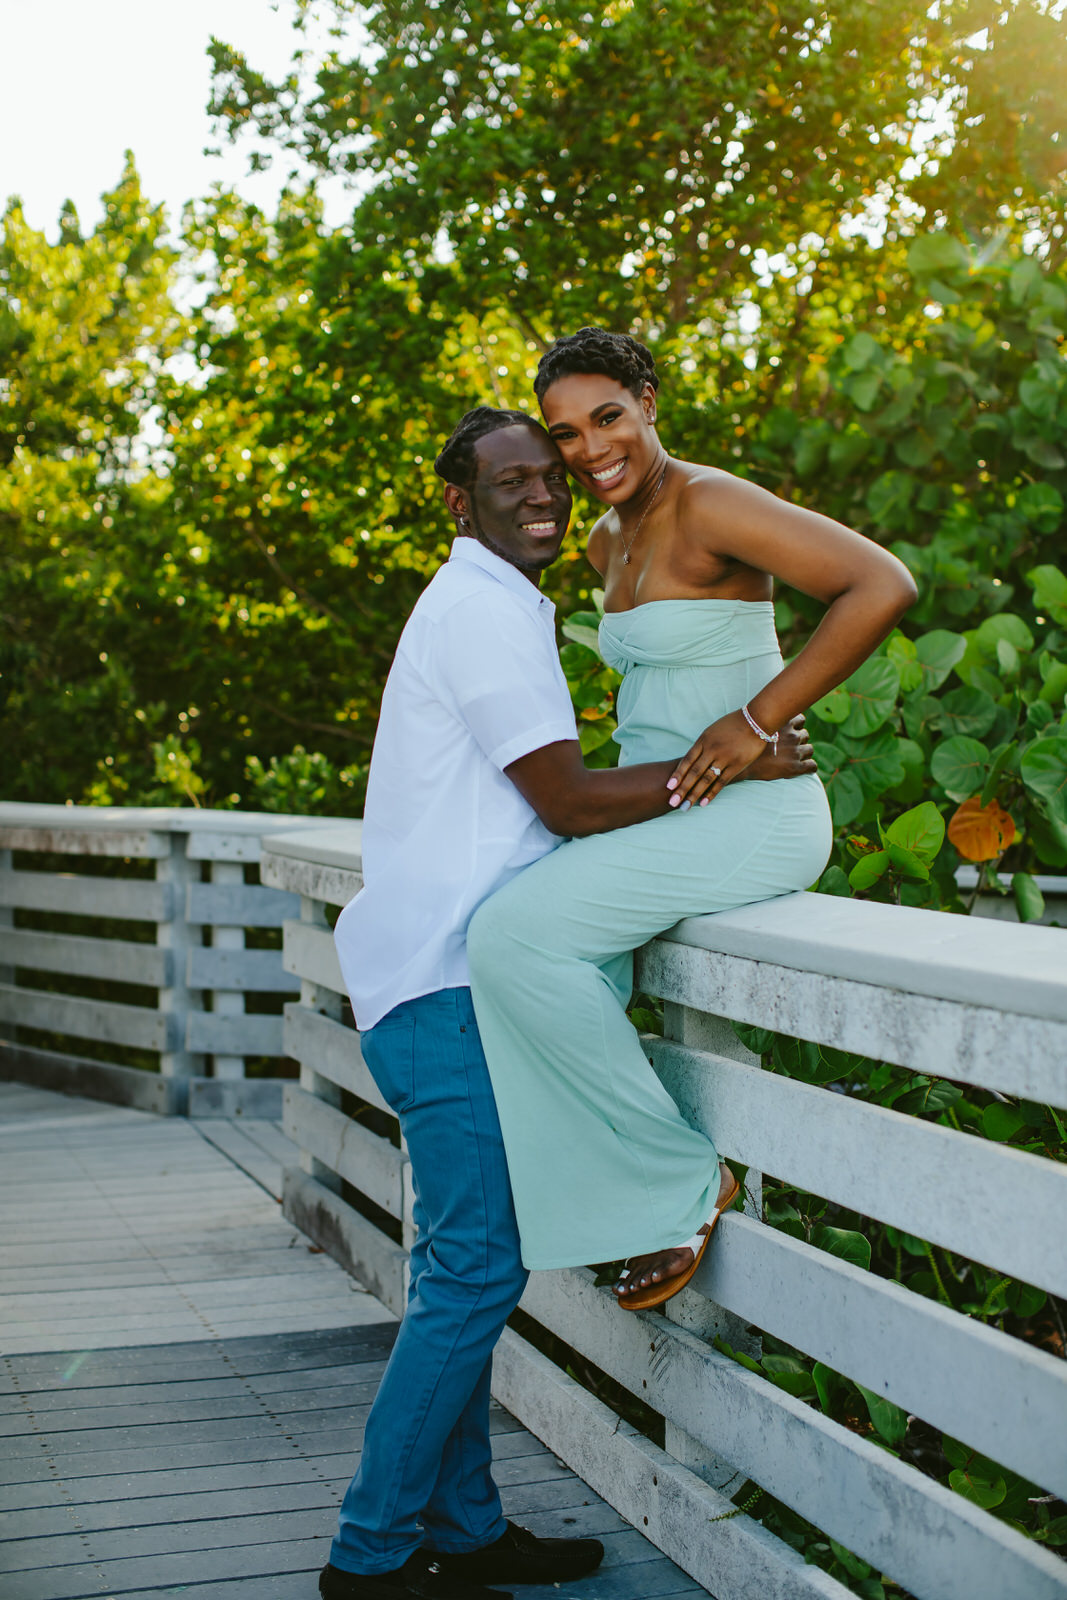 engagement-portraits-fort-lauderdale-nature-tiny-house-photo-38.jpg